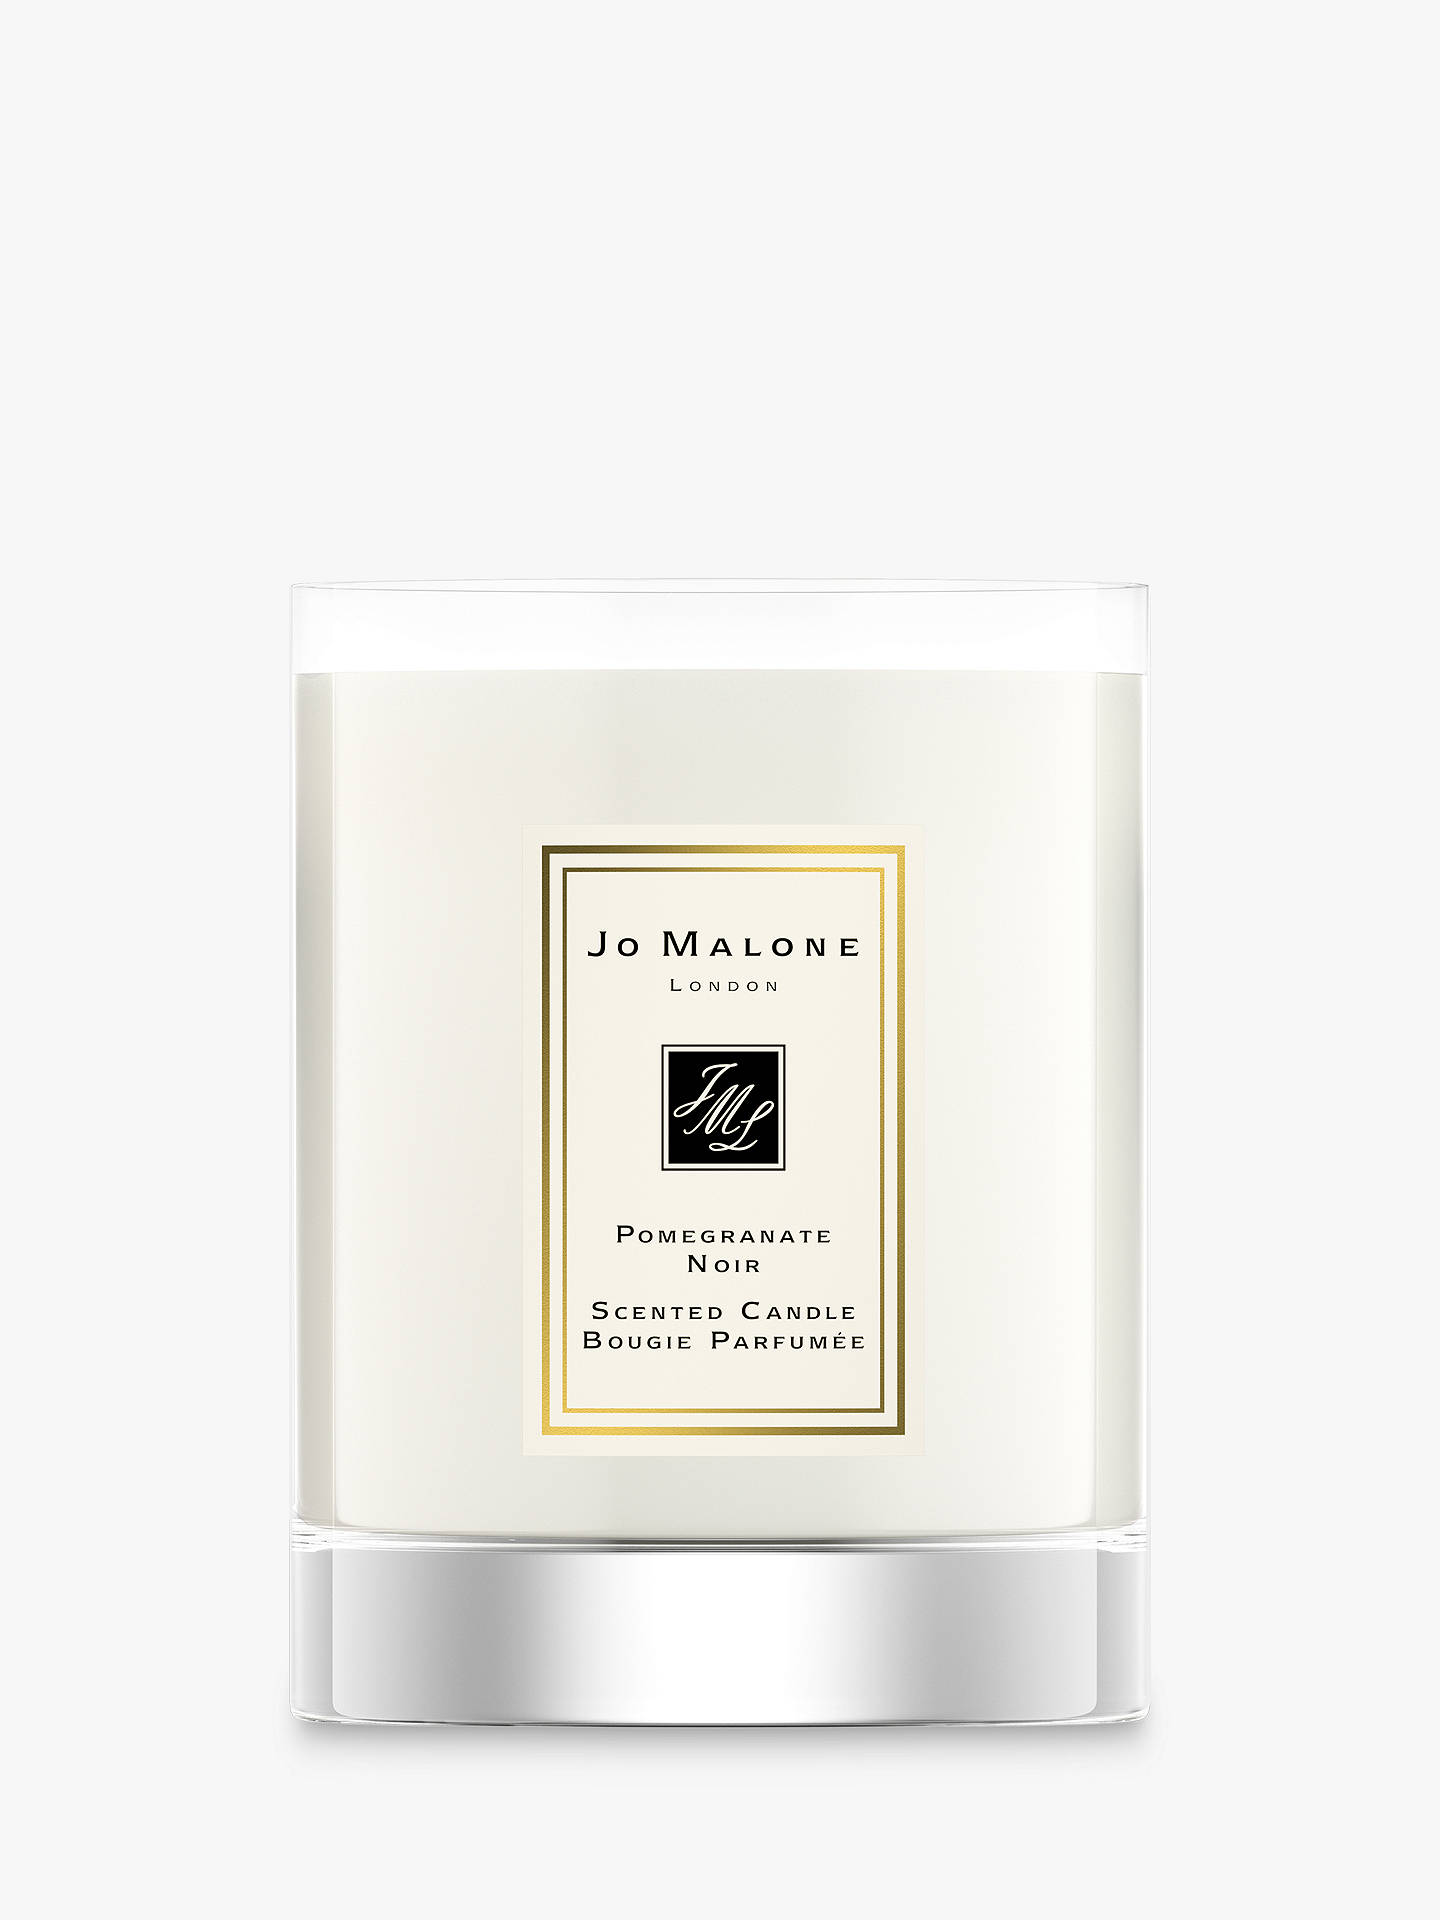 jo malone london pomegranate noir travel scented candle. Black Bedroom Furniture Sets. Home Design Ideas